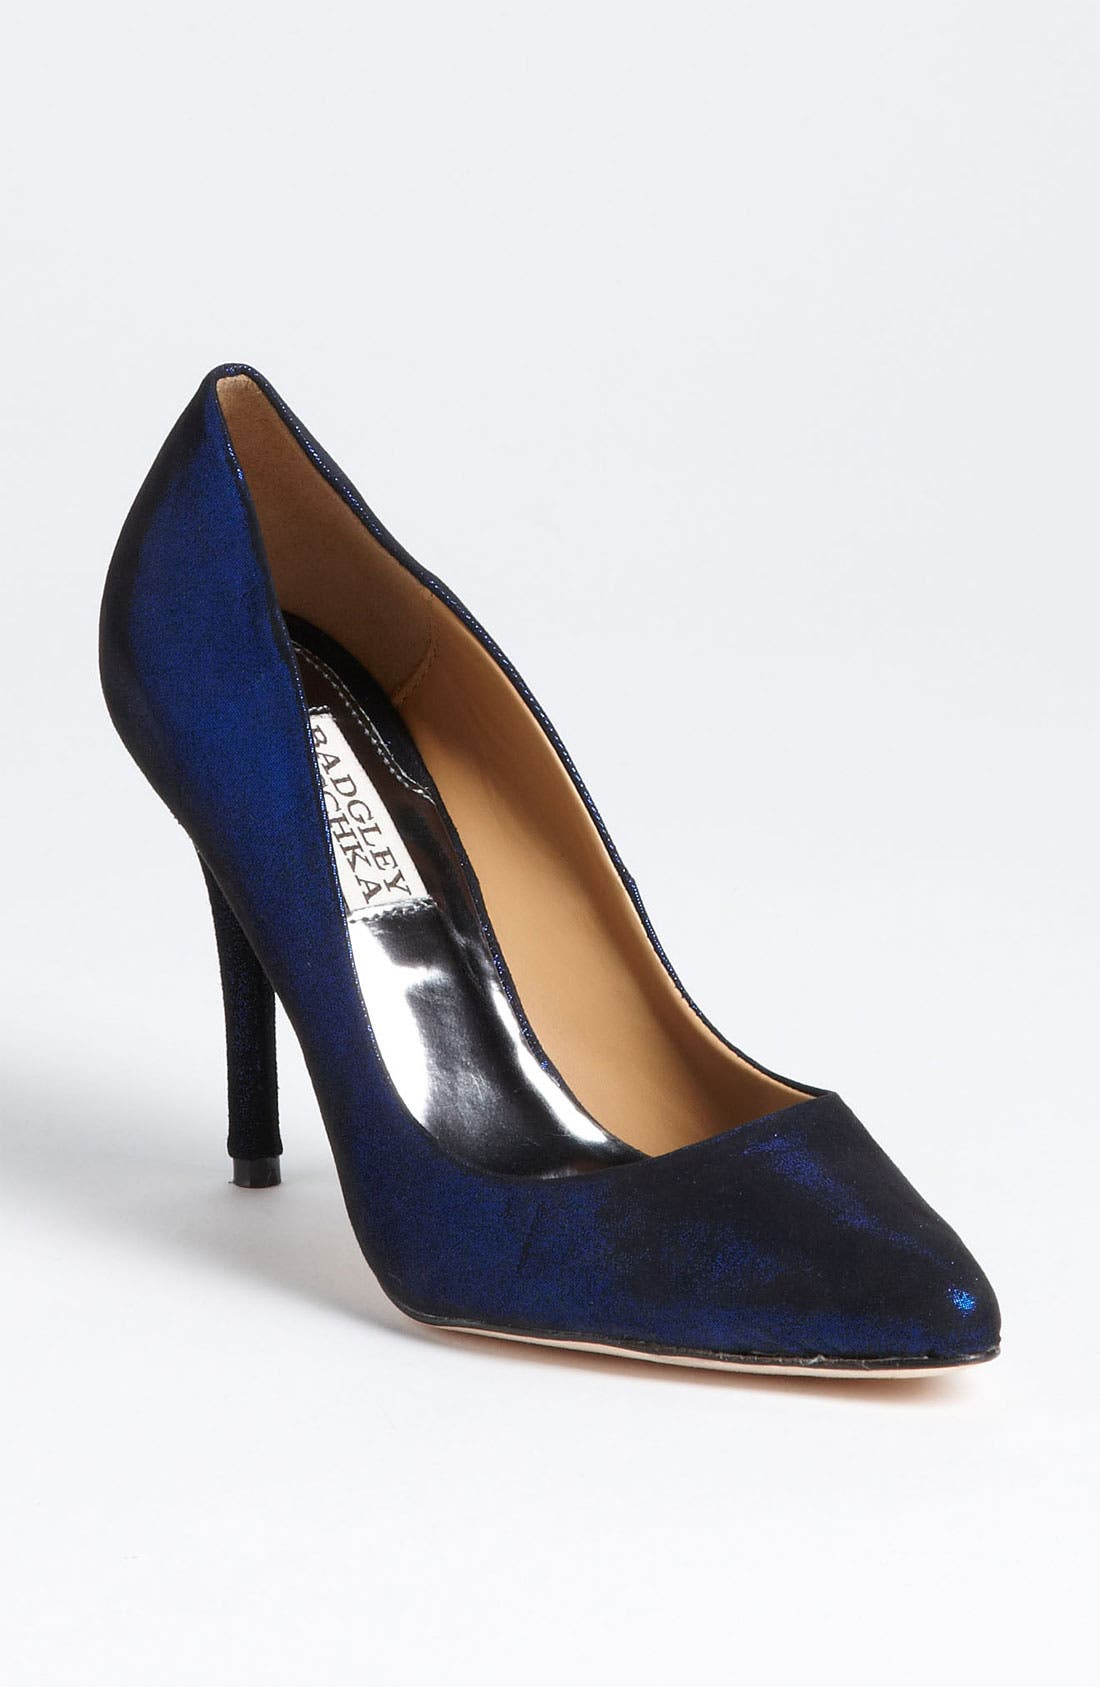 Main Image - Badgley Mischka 'Vision' Pump